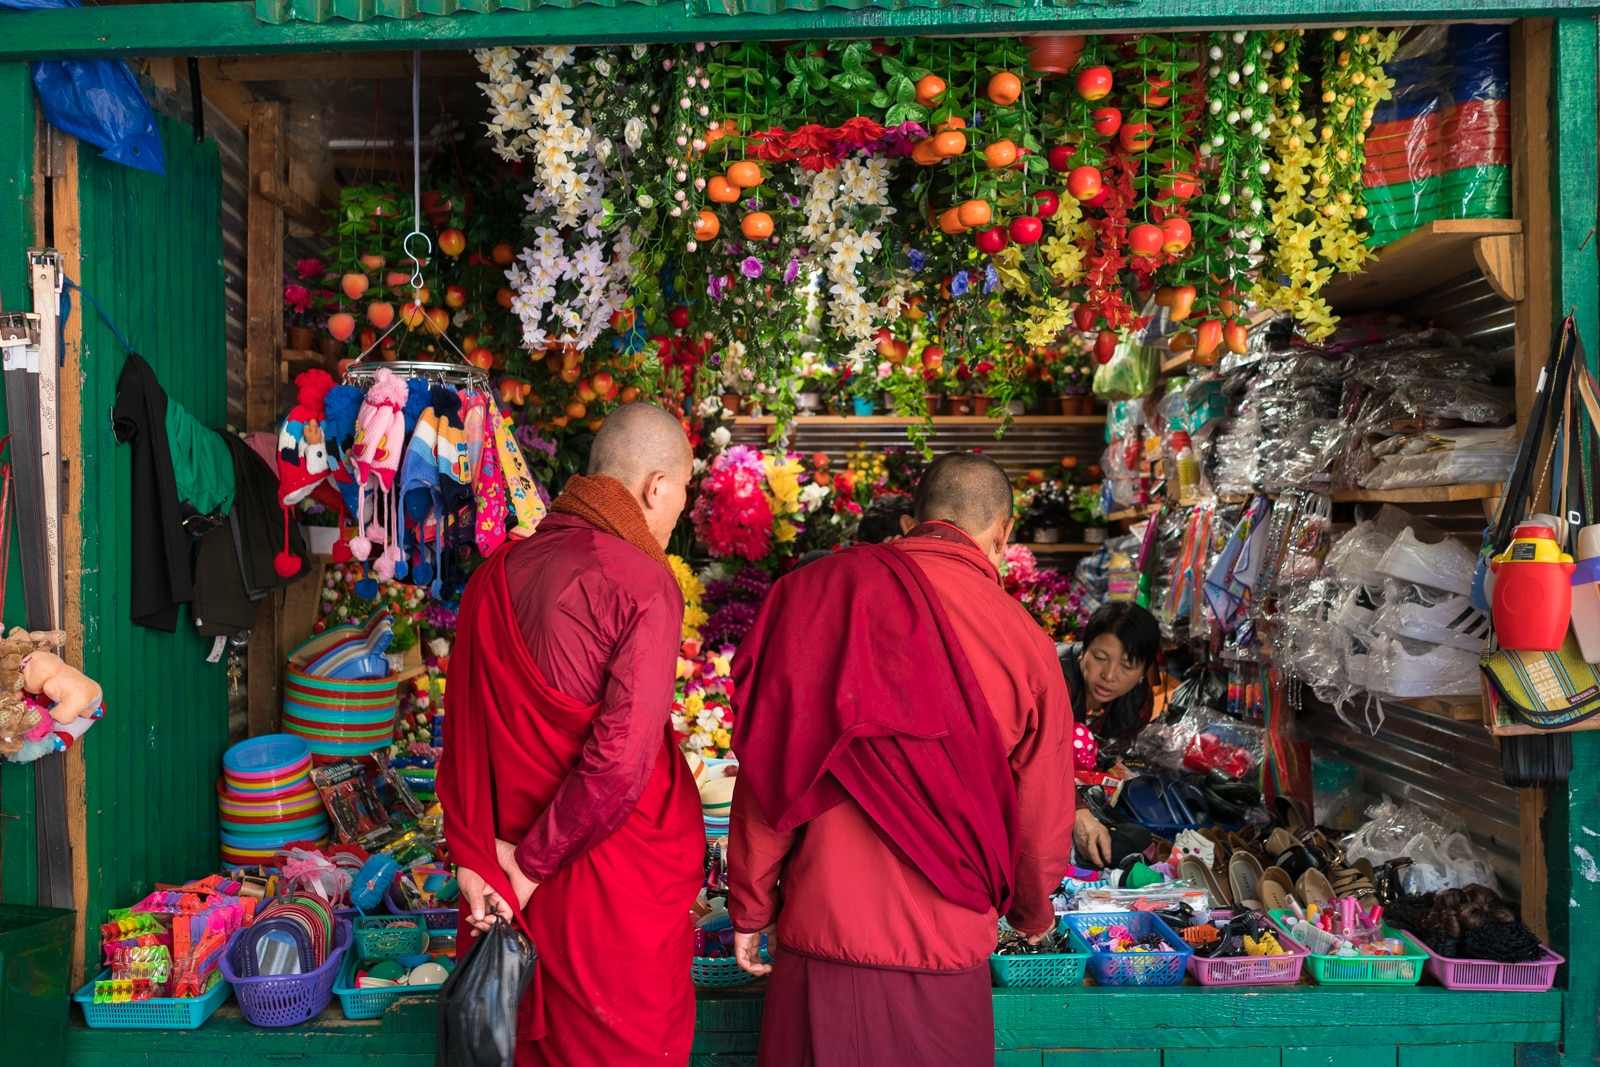 Is Bhutan worth the tourist fee - Red robed monks shopping at the handicrafts market in Thimphu - Lost With Purpose travel blog